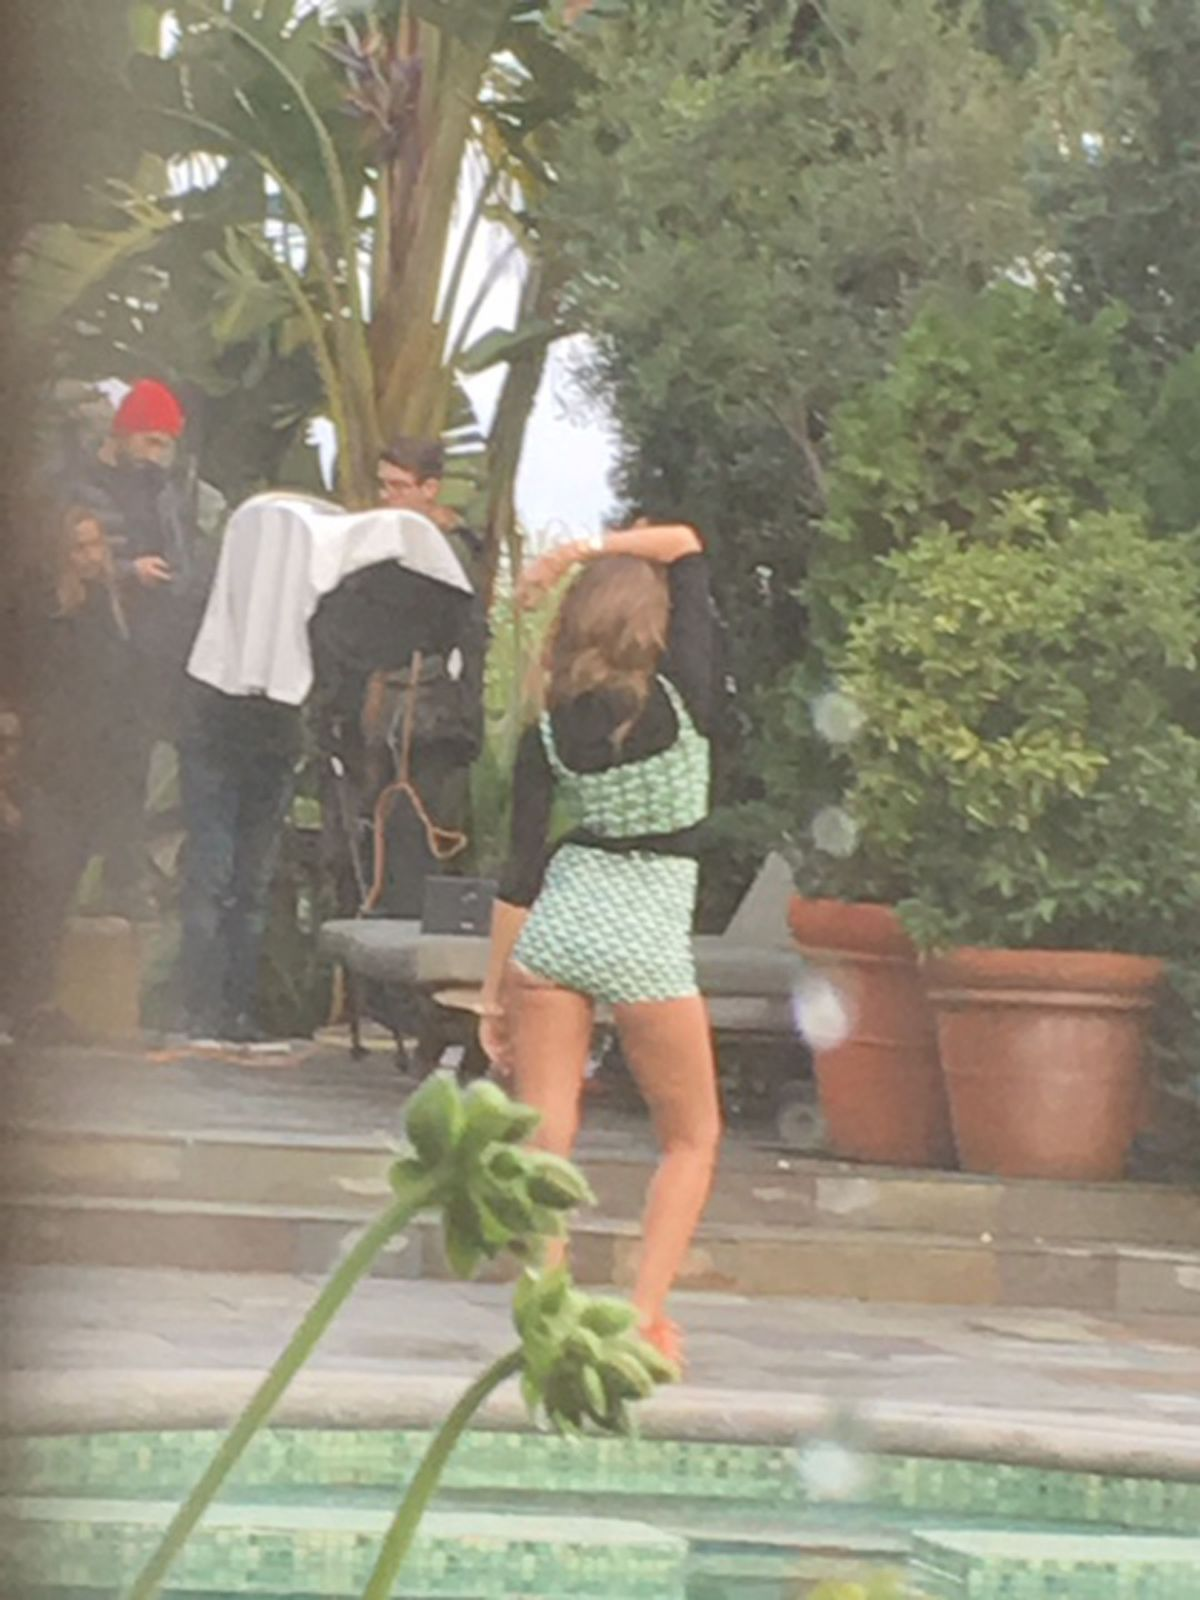 http://www.hawtcelebs.com/wp-content/uploads/2017/01/jessica-alba-on-the-set-of-a-photoshoot-in-los-angeles-01-20-2017_2.jpg